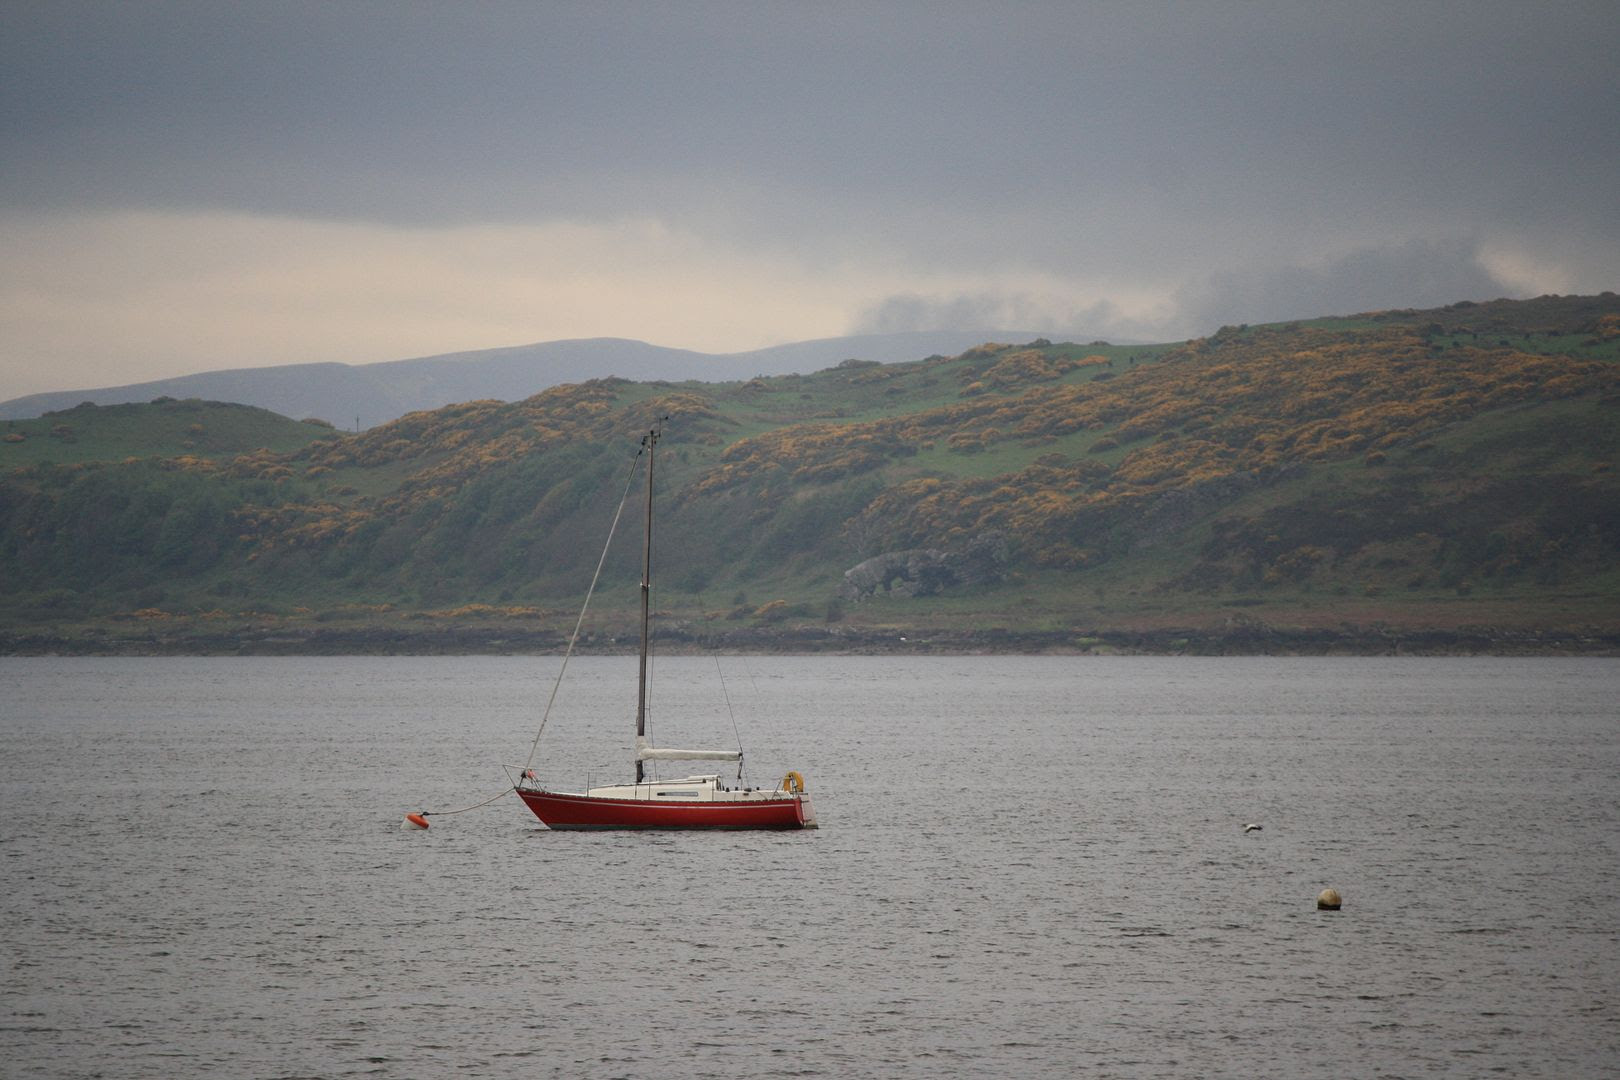 Sailboat in Fairlie, Scotland photo 2014-05-142015_zps39b07329.jpg